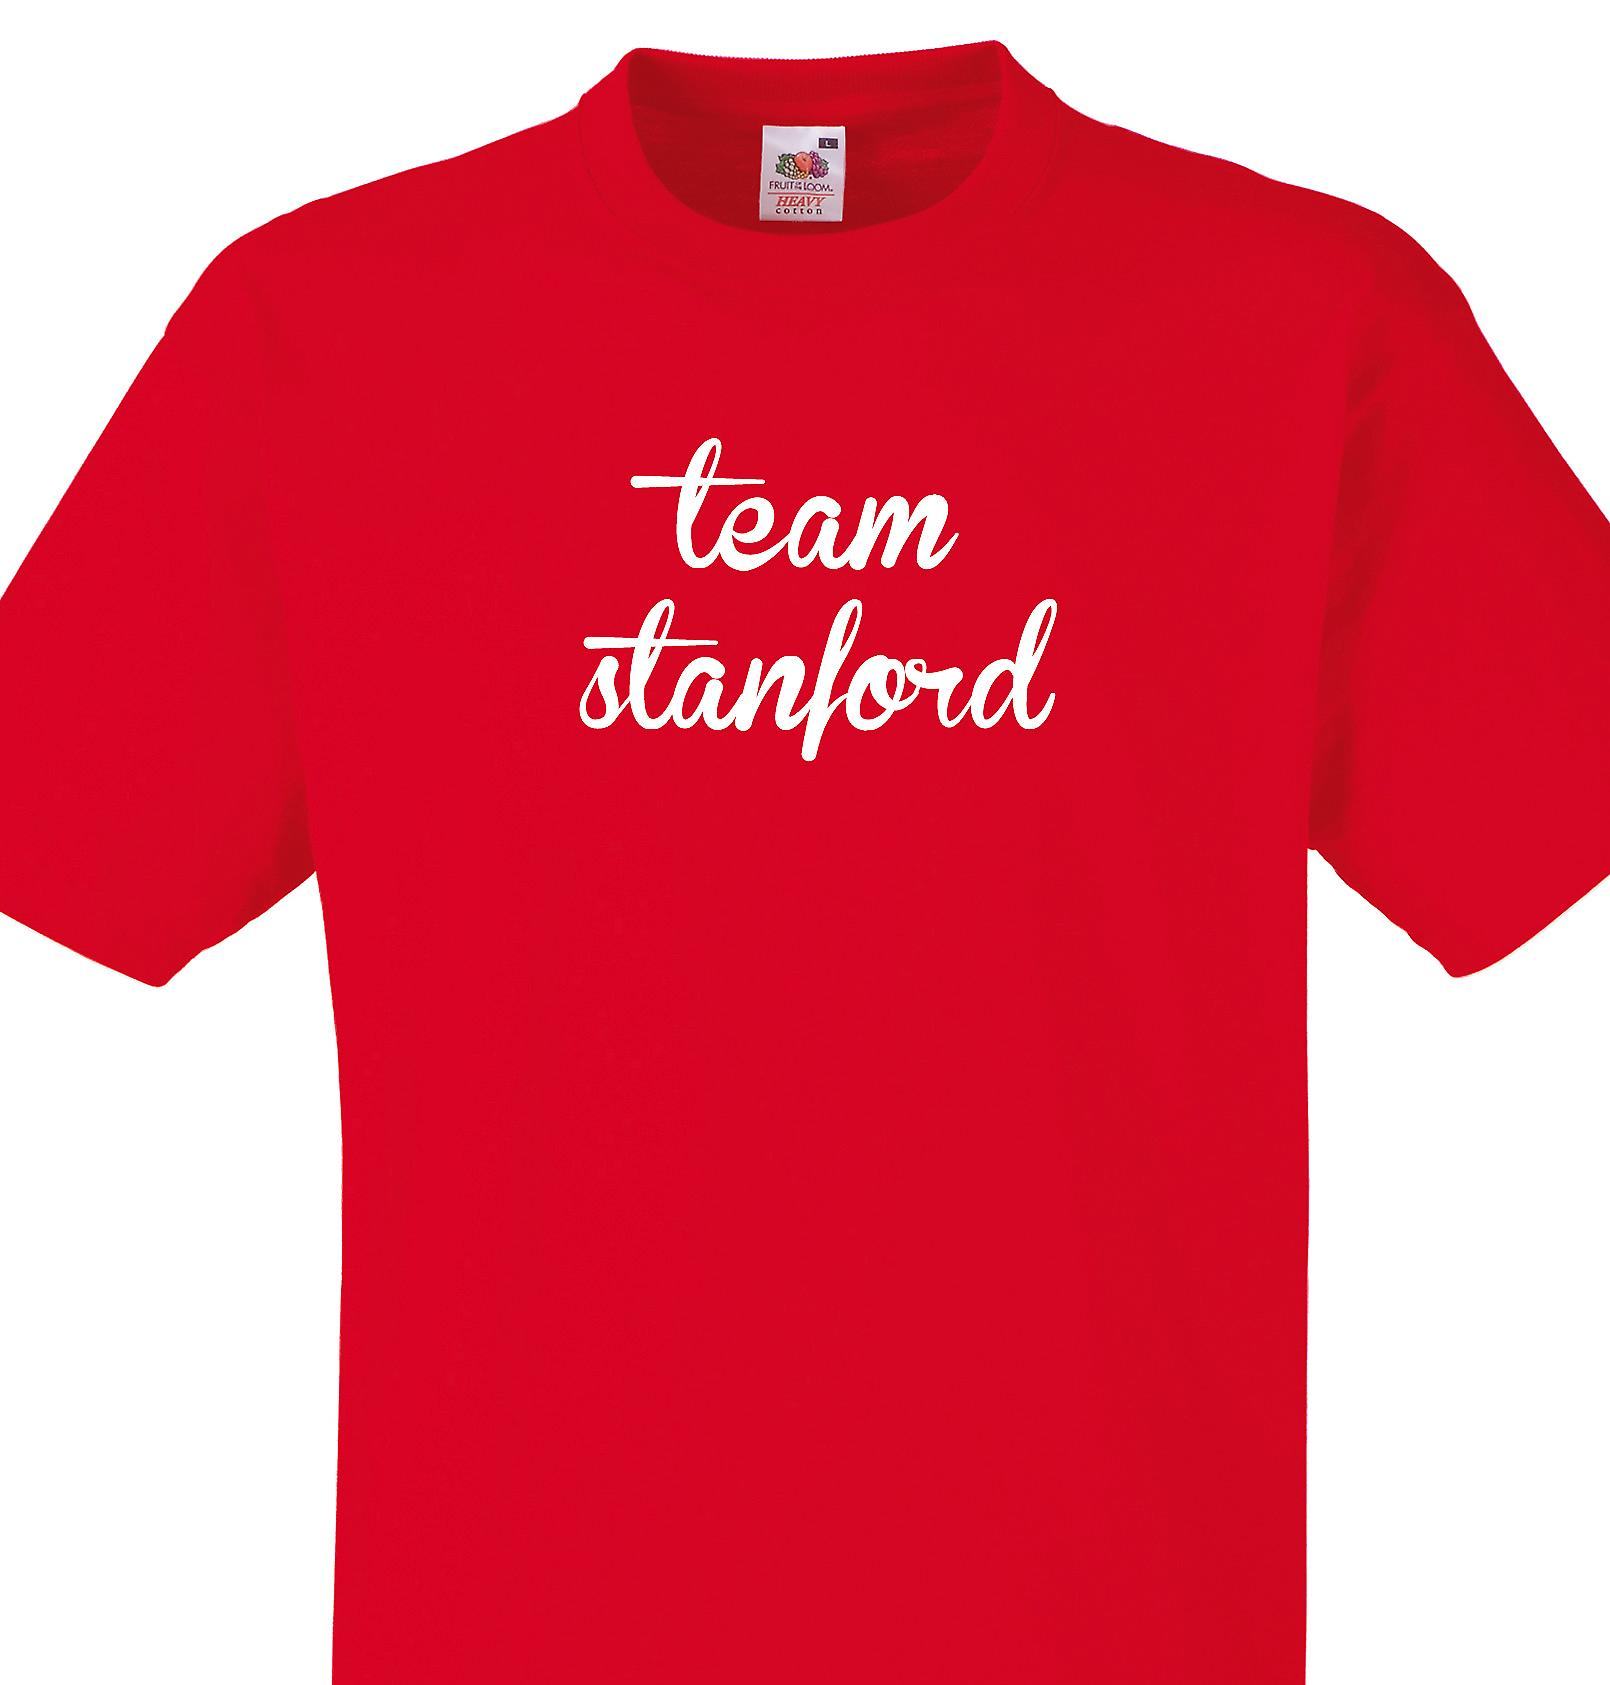 Team Stanford Red T shirt